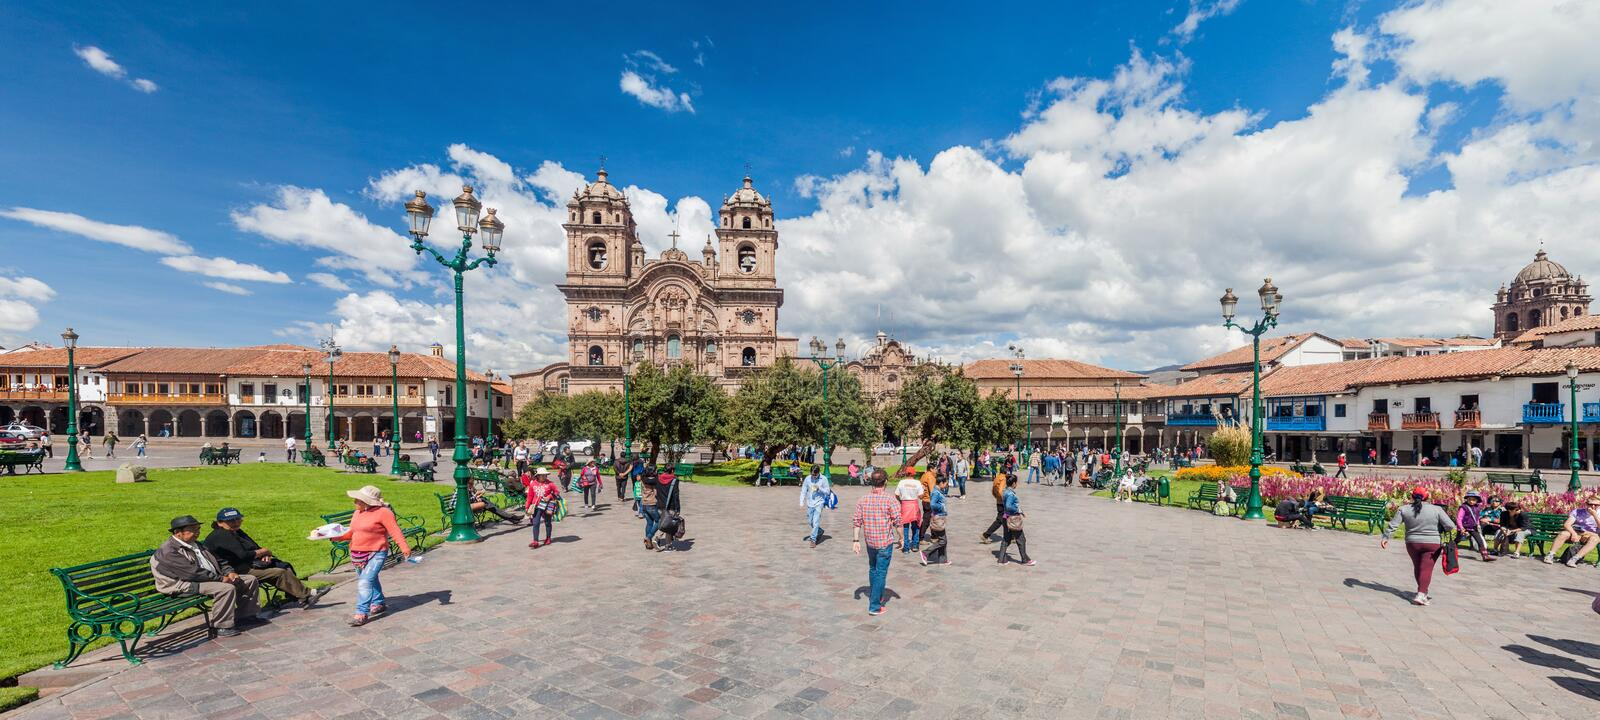 Place de Plaza de Armas dans Cuzco, Pérou photo libre de droits